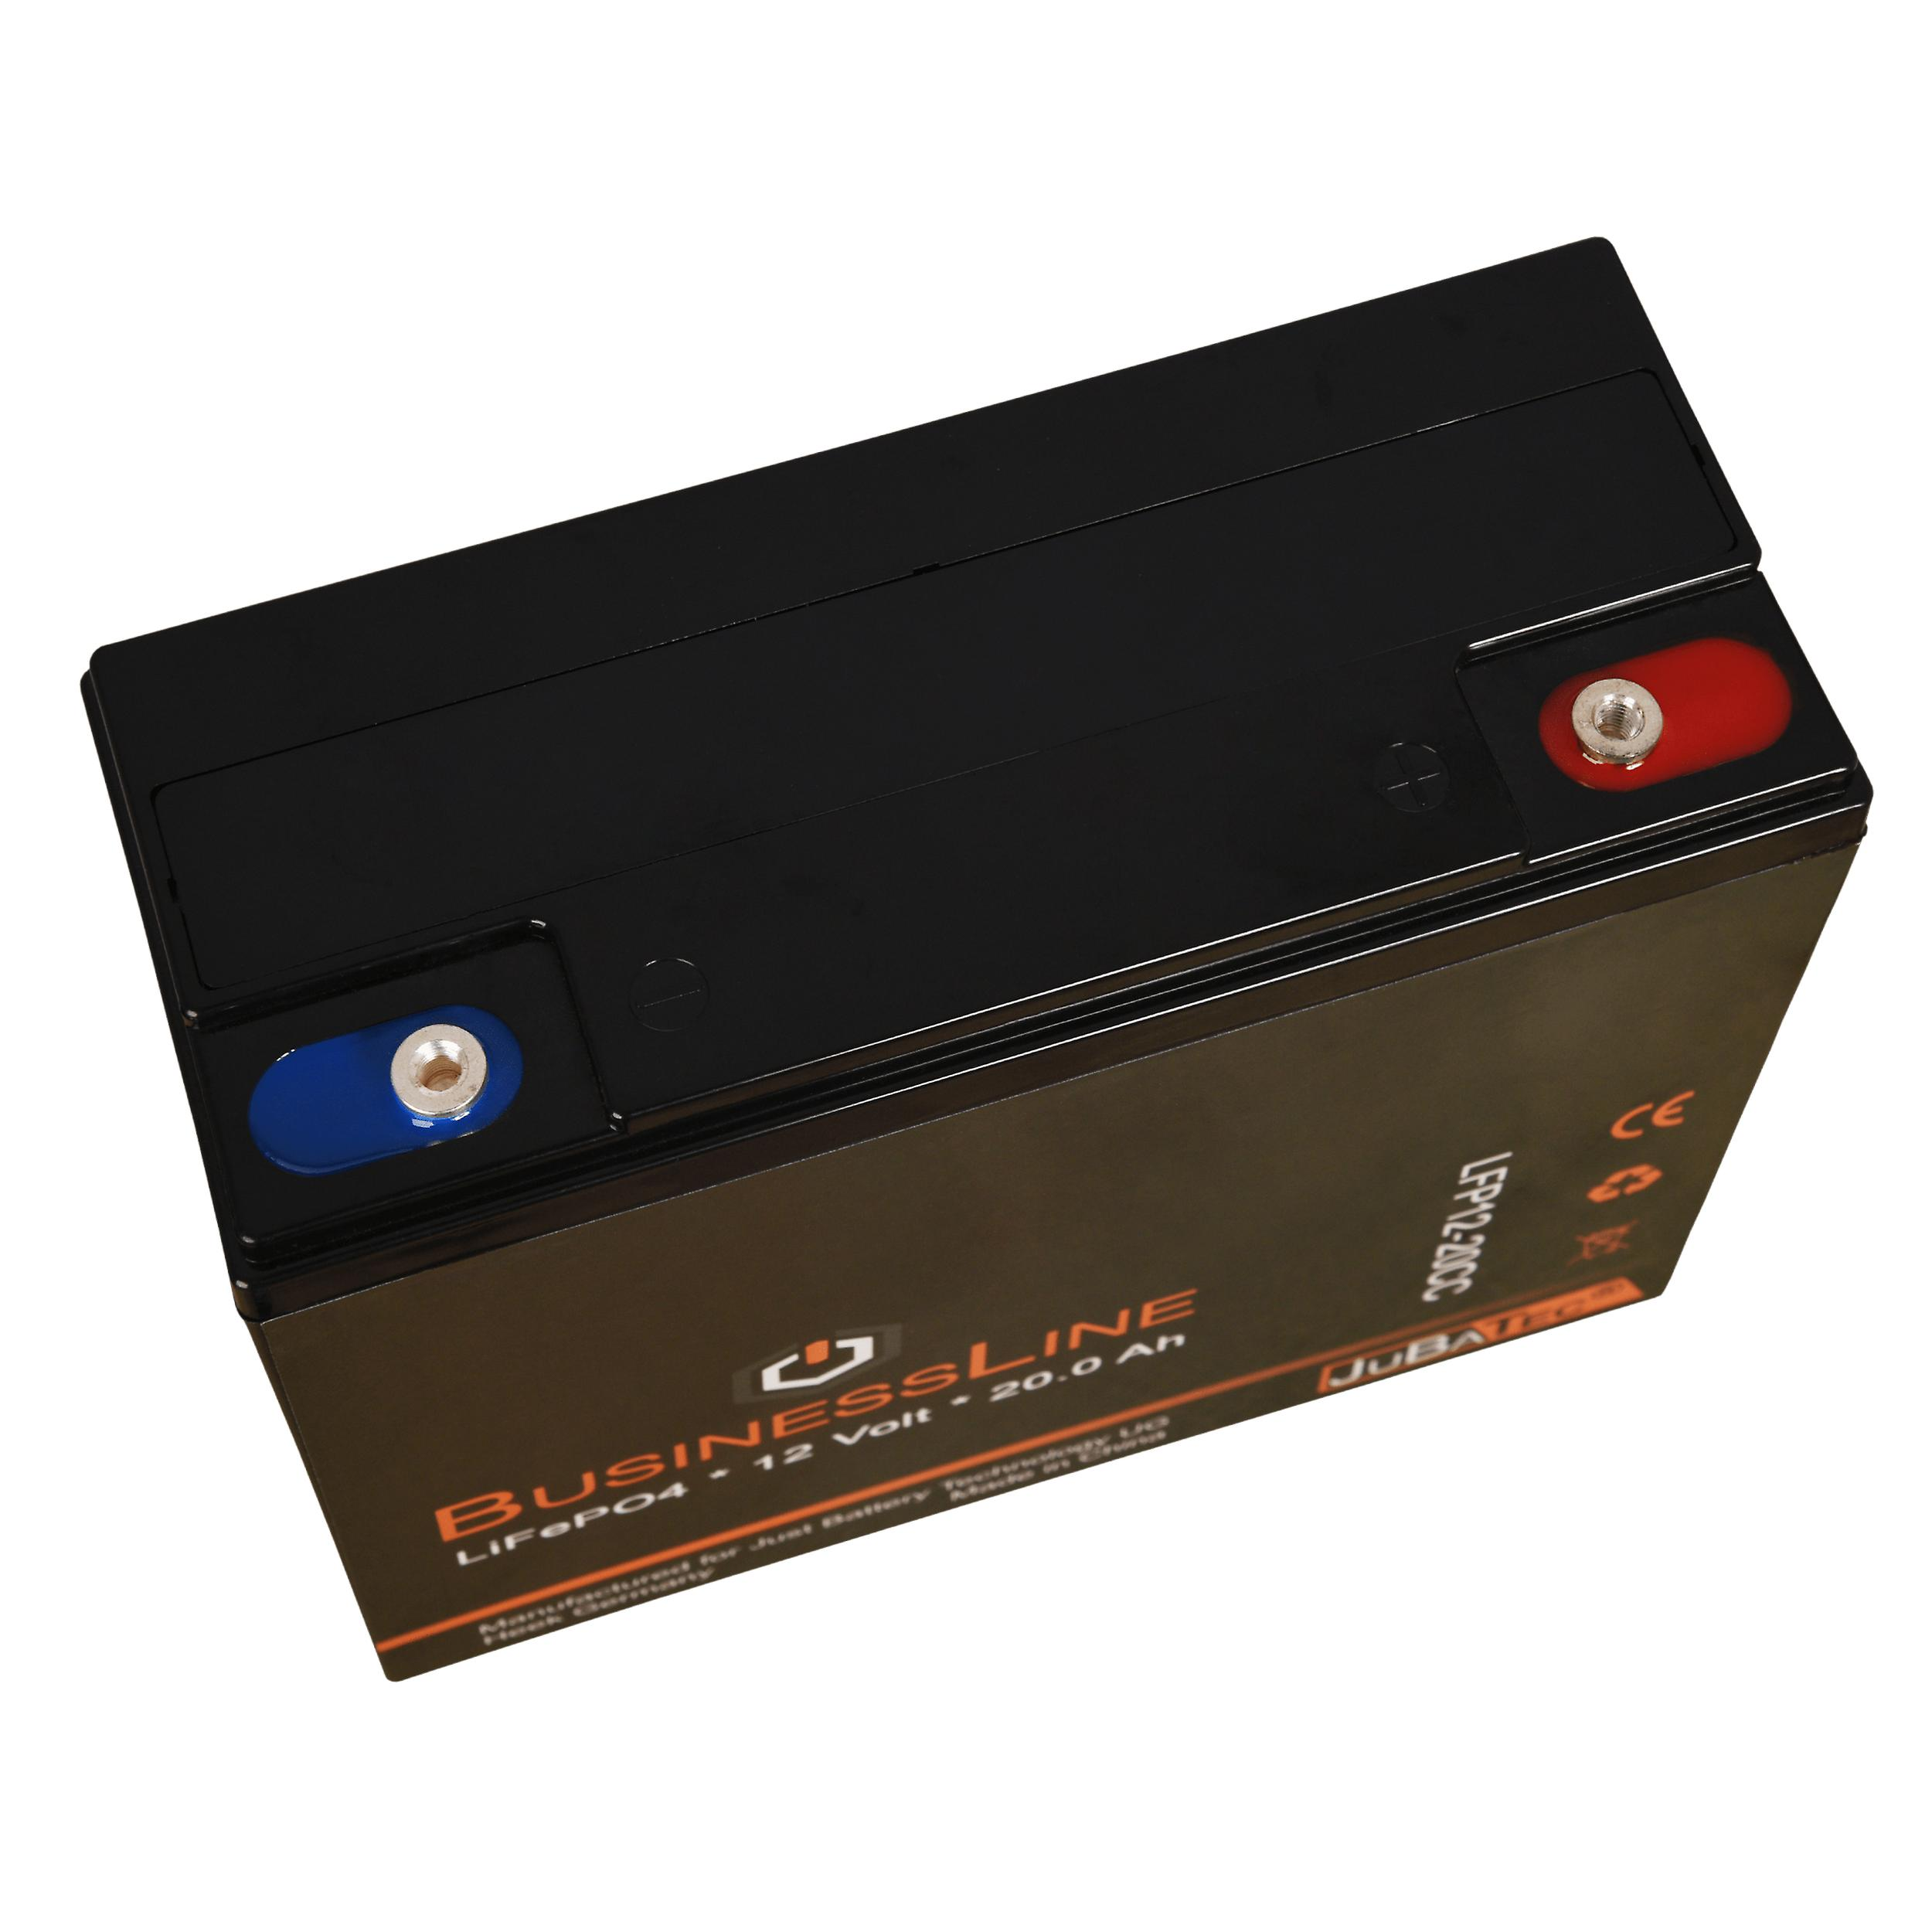 LiFePO4 battery 12 V 20.0 Ah with BMS (Battery Management System)